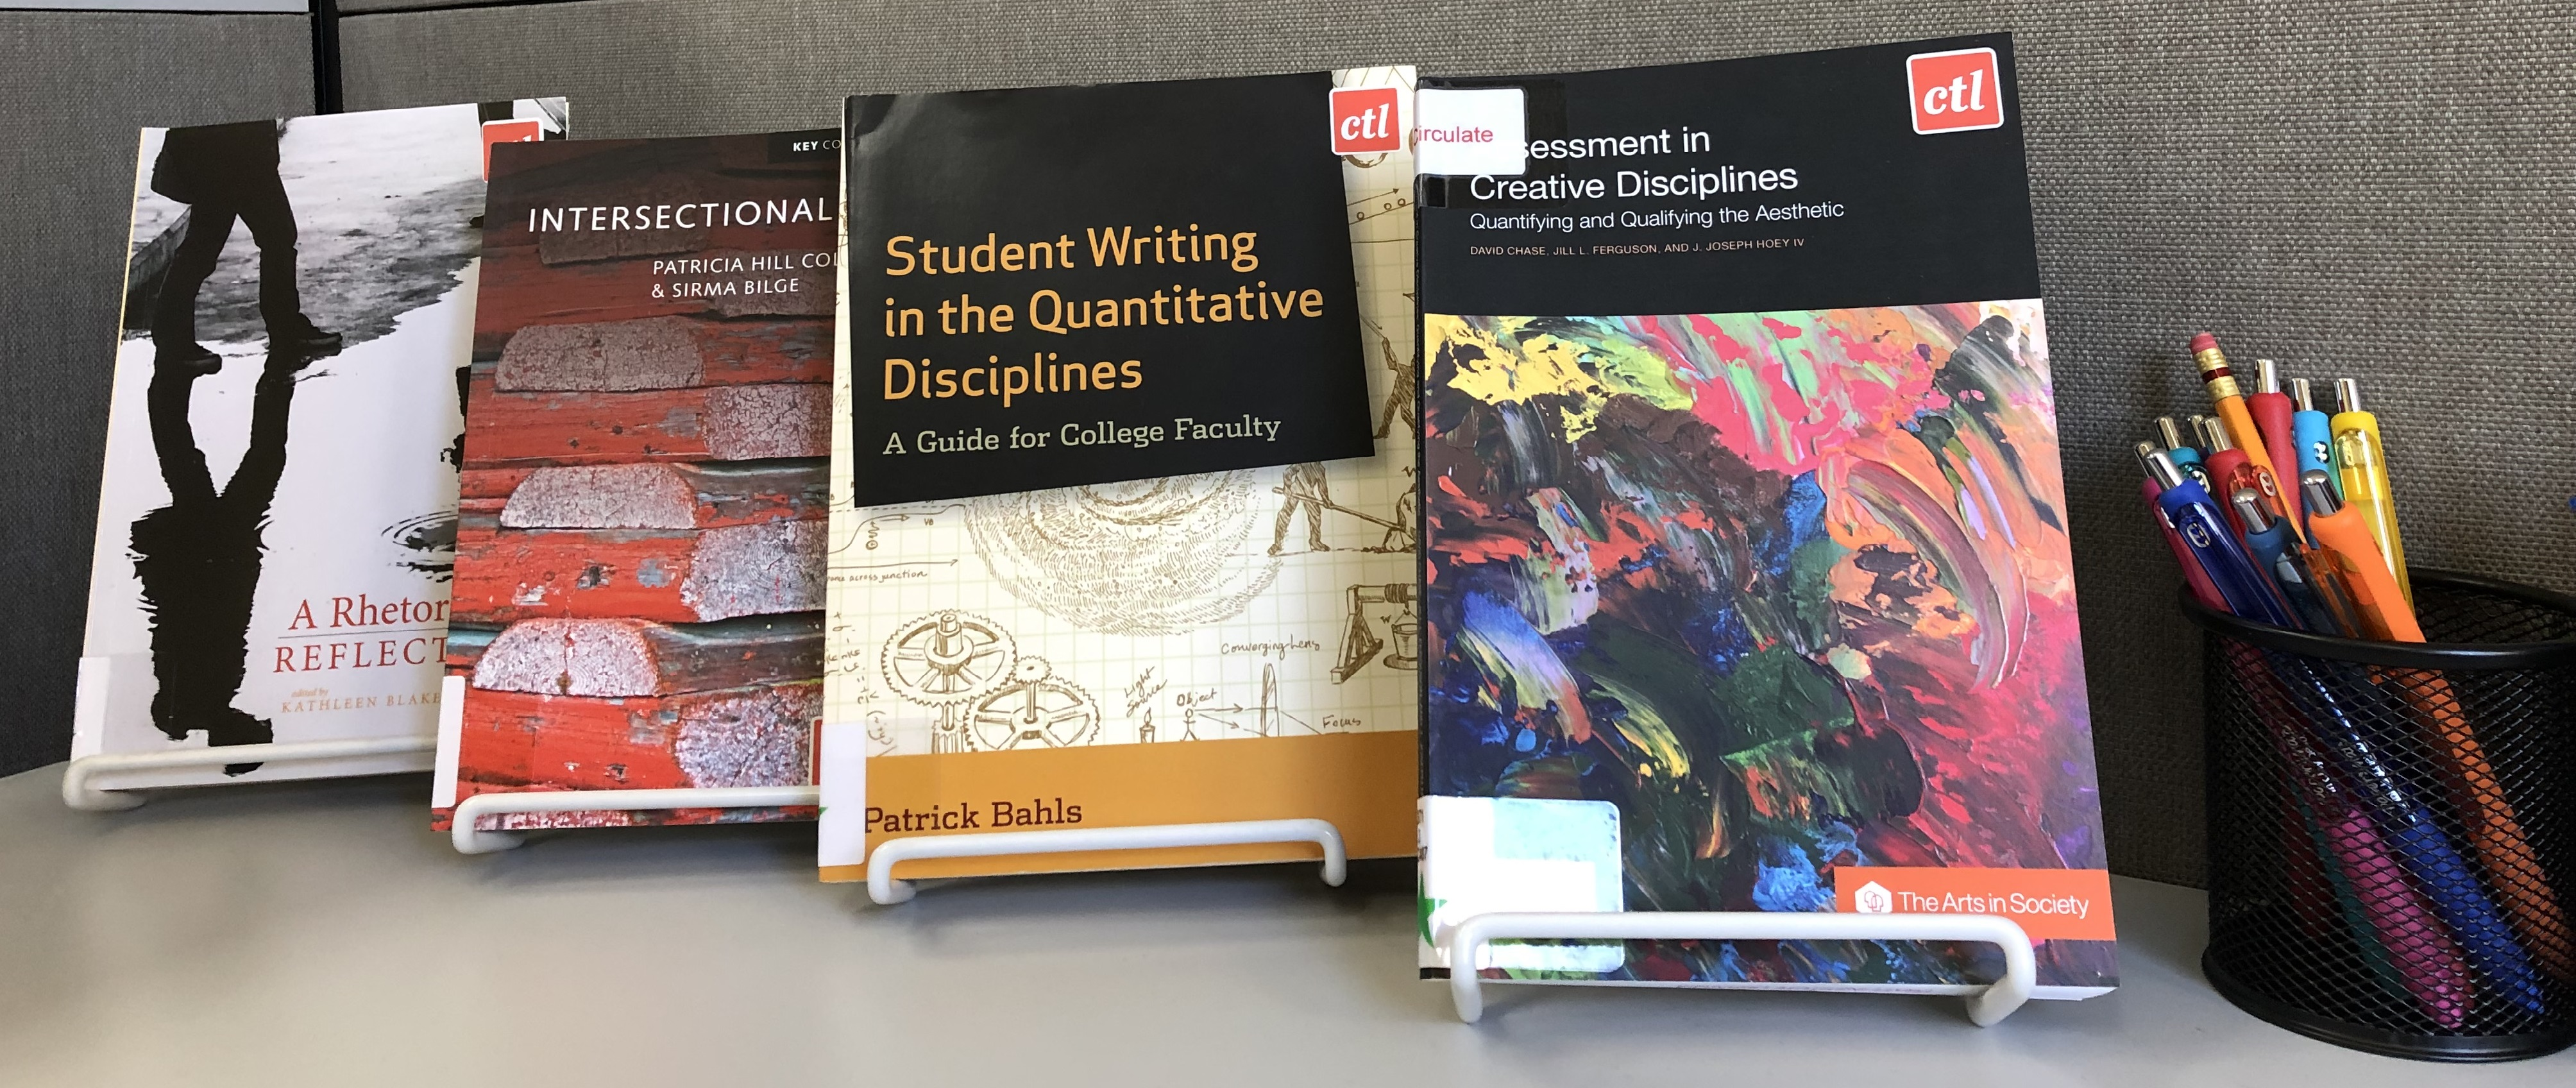 An image of several books from the Teaching and Learning Center's Collection on display